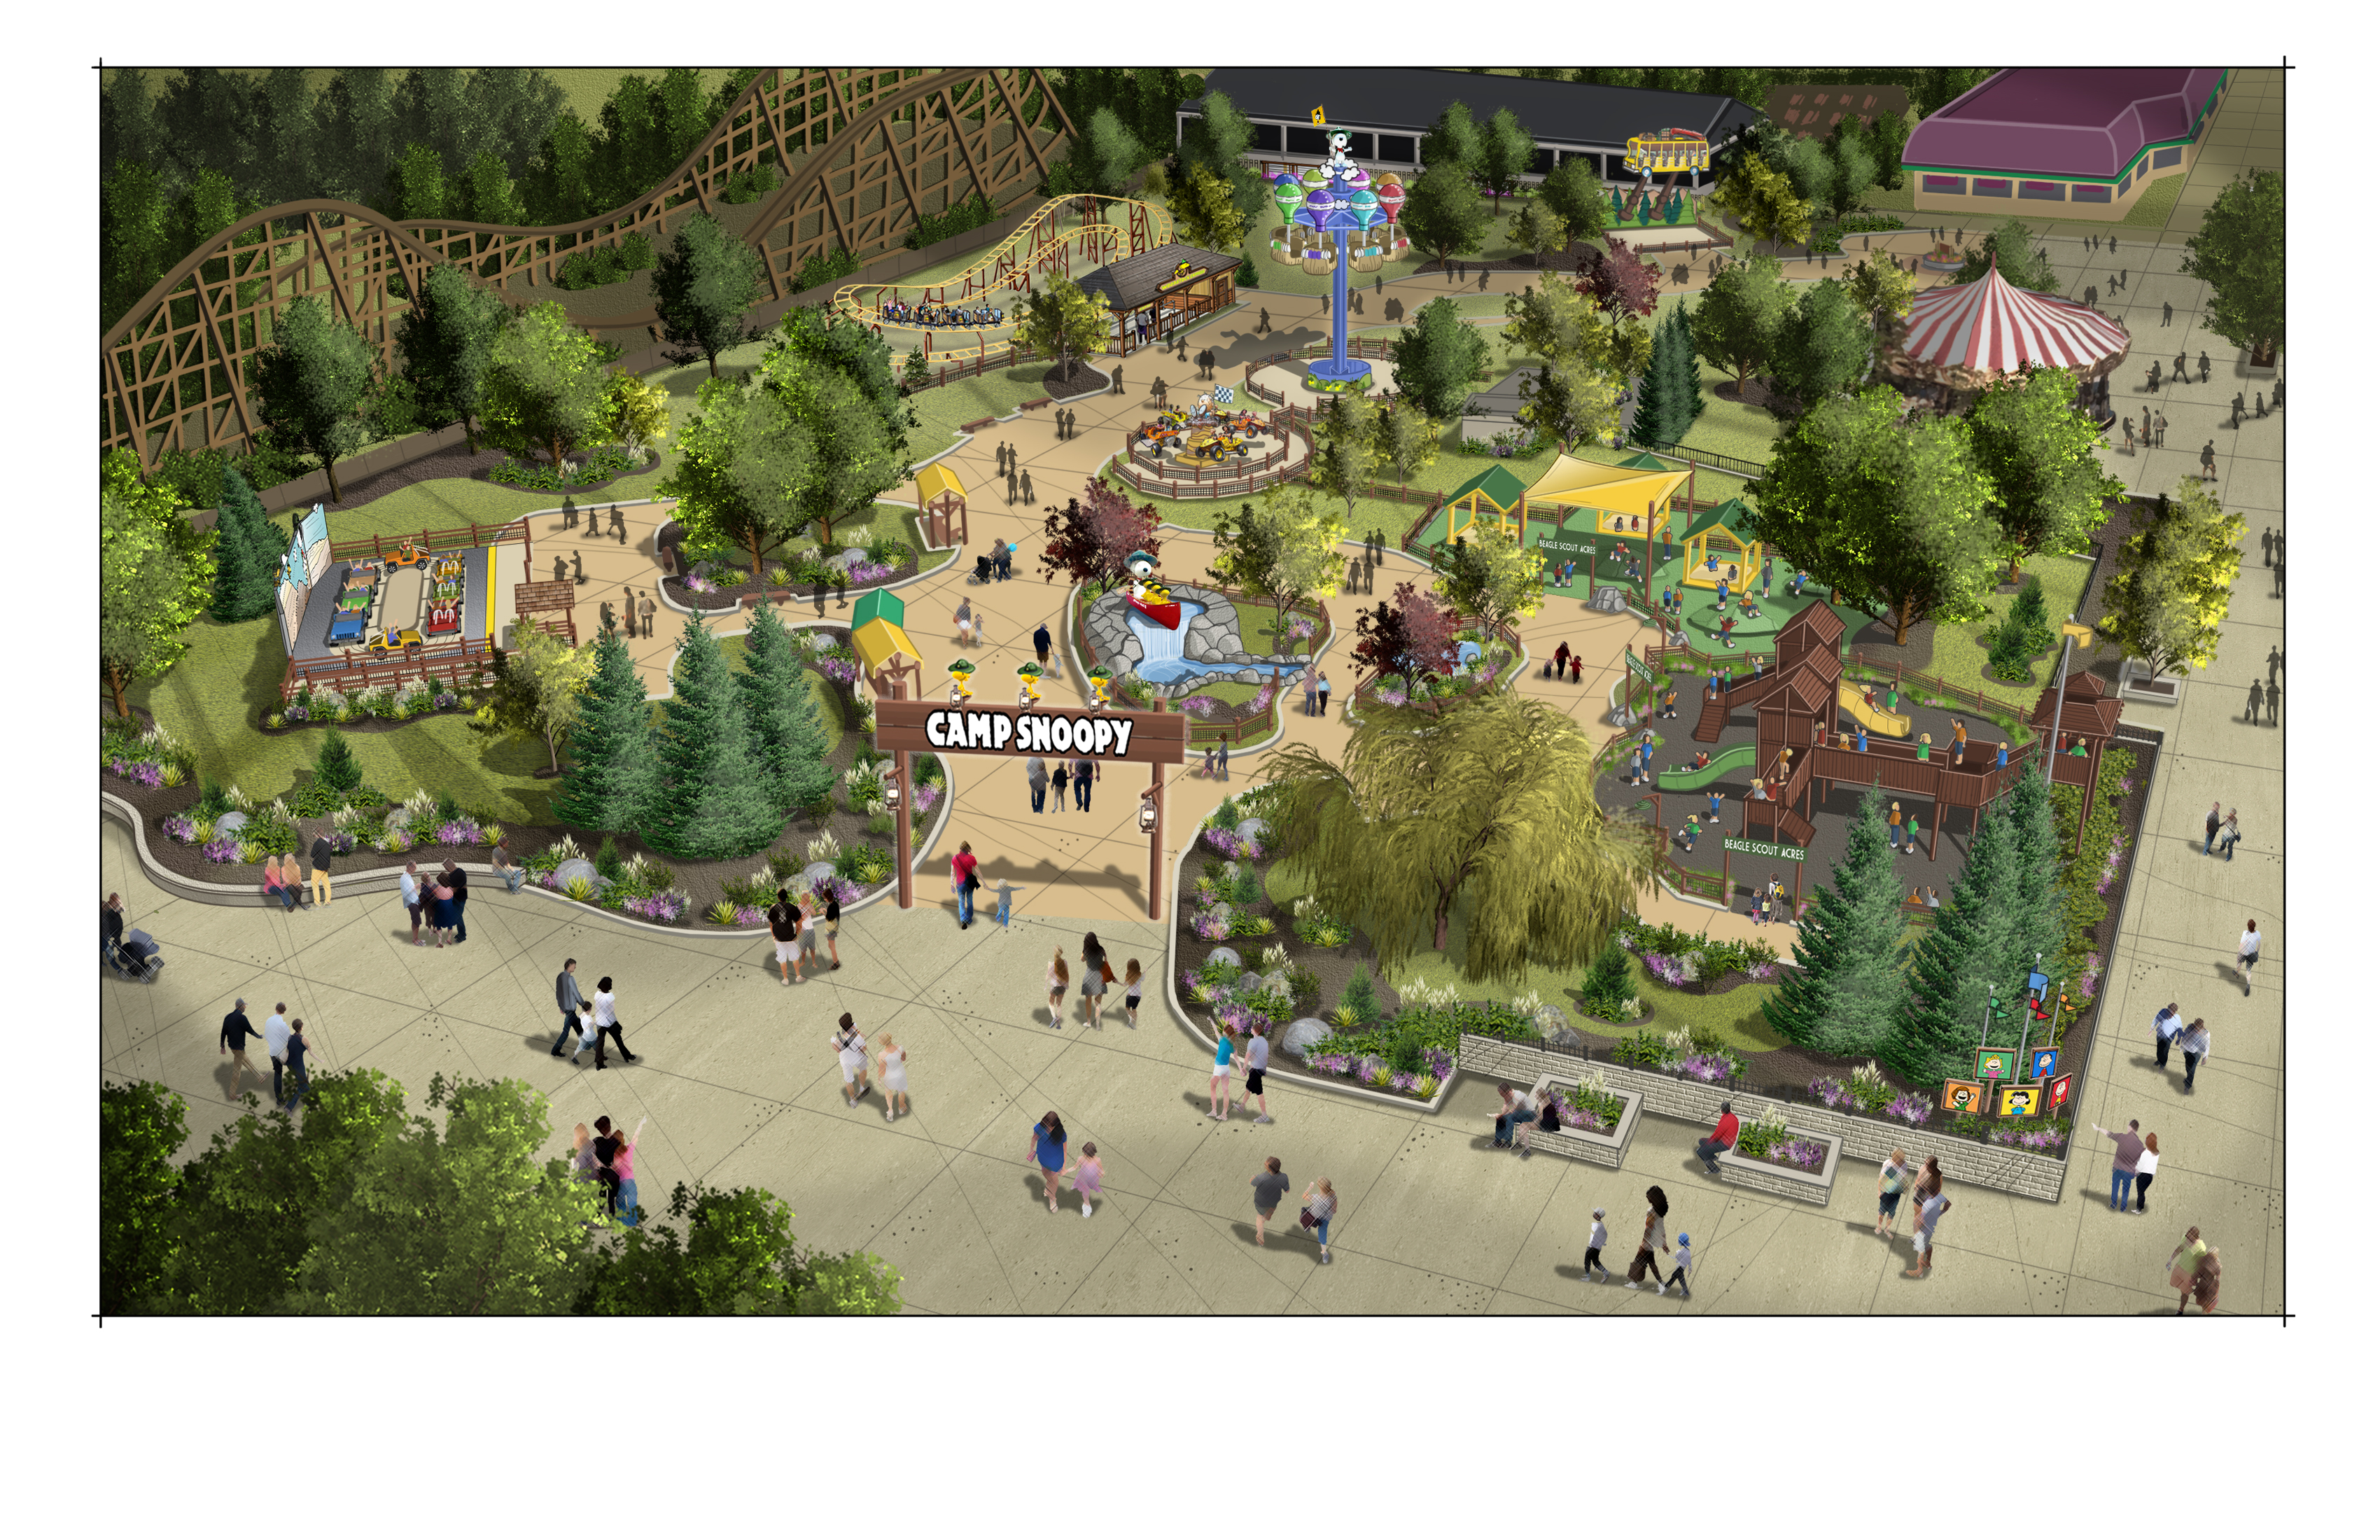 Michigan's Adventure to open Snoopy-themed park in 2020